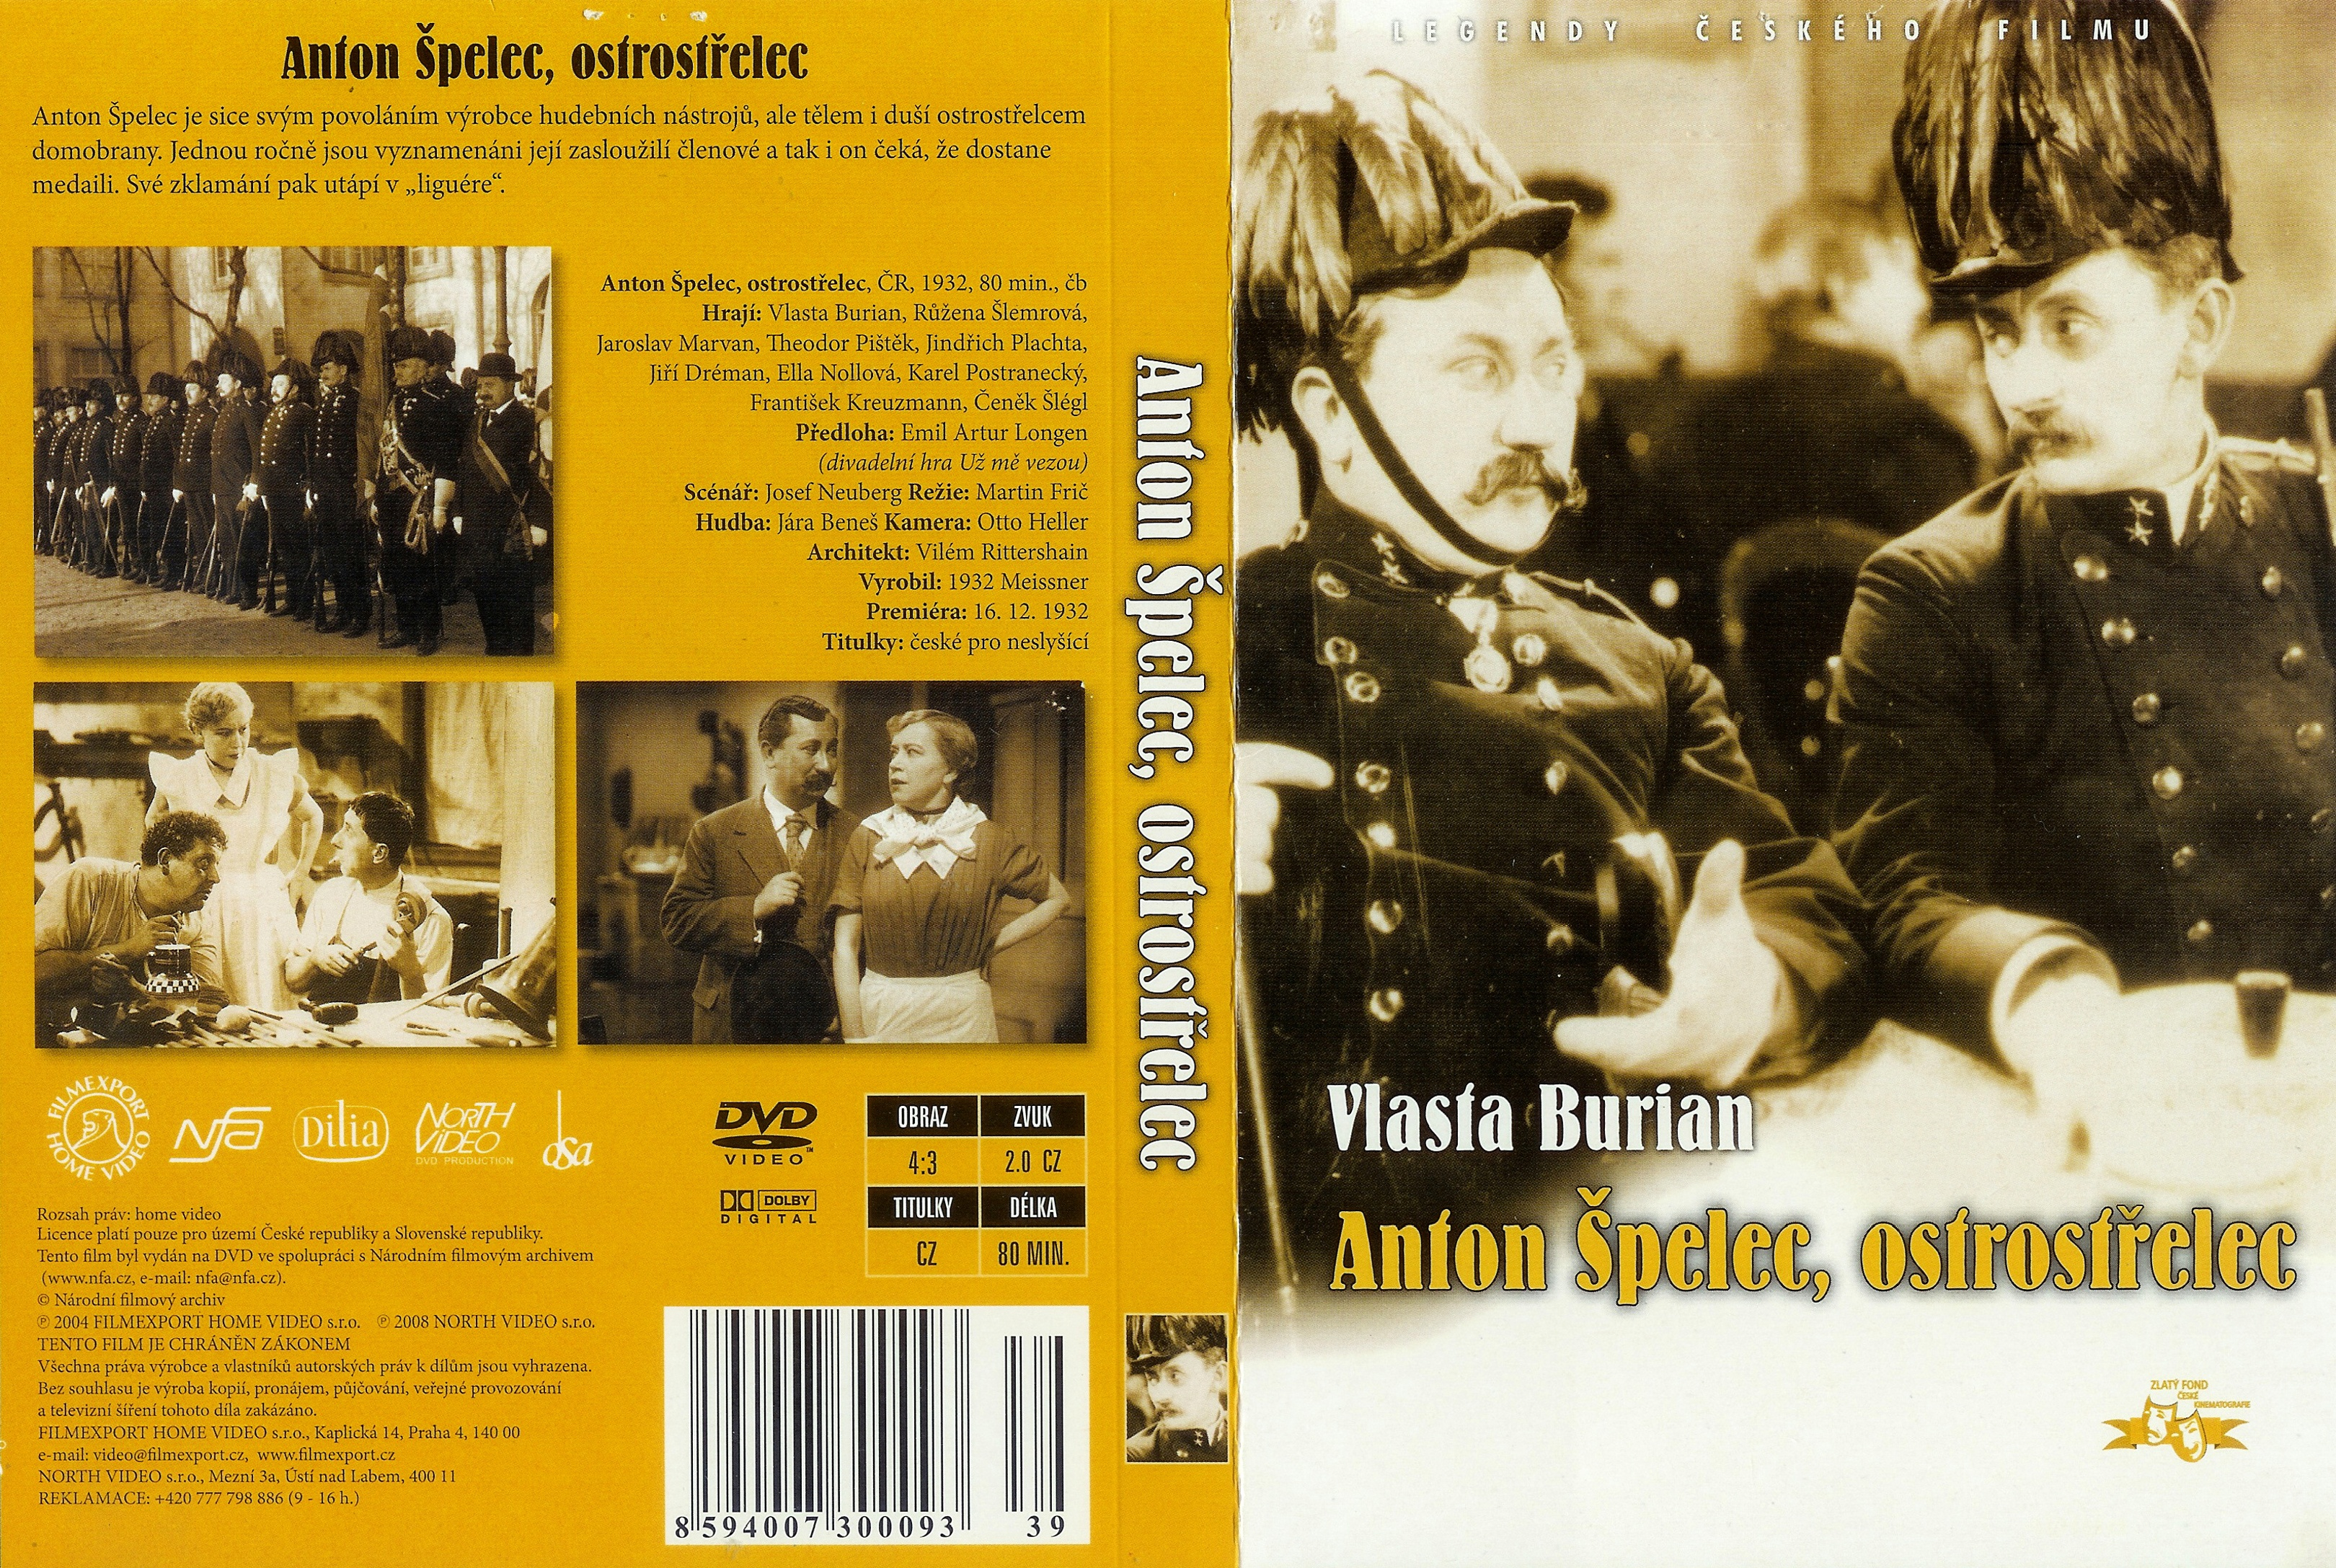 http://covers.box3.net/newsimg/dvdmov/max1349087333-front-cover.jpg